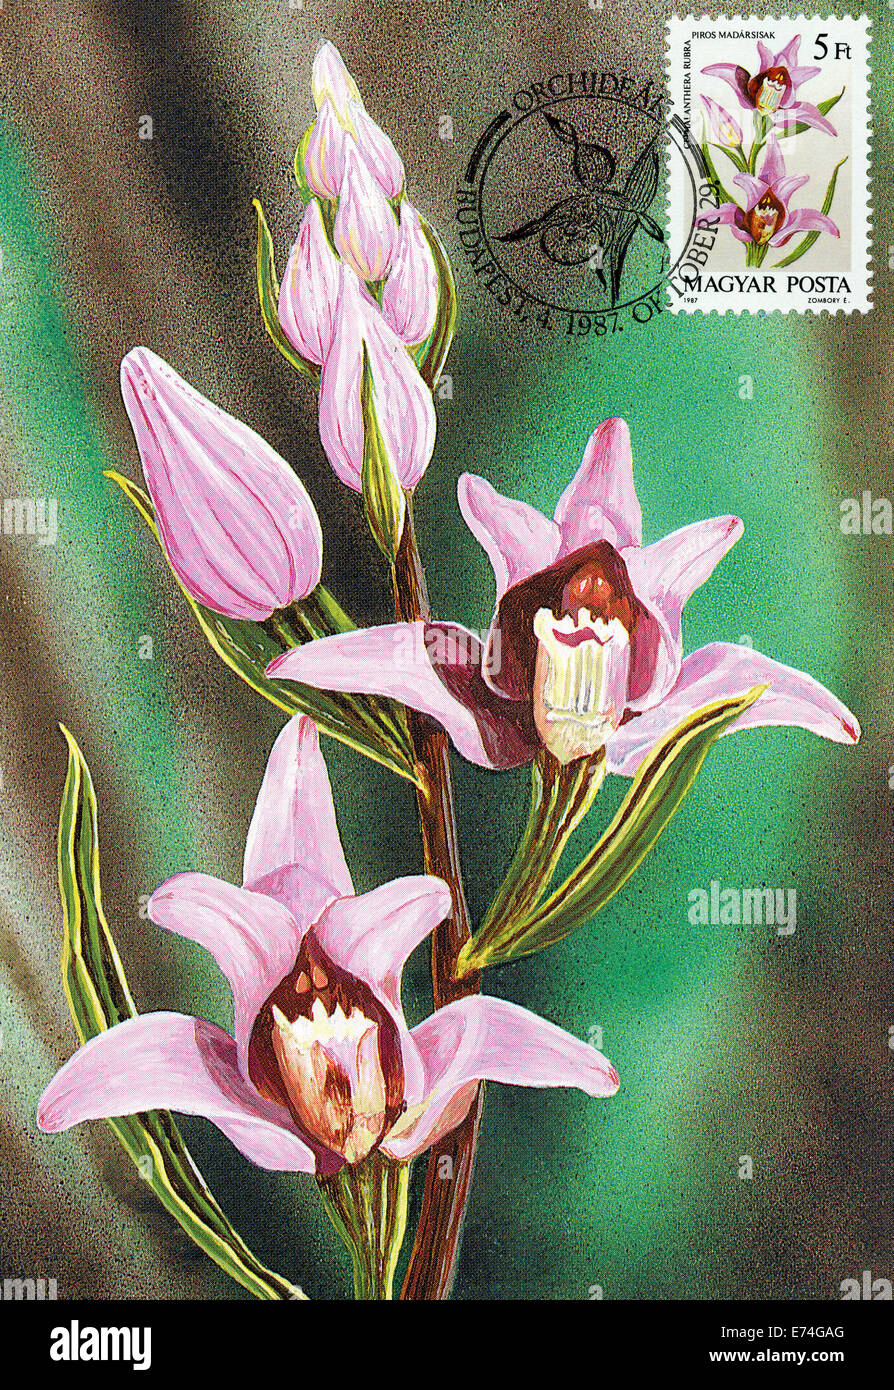 Hungary Maximum card with orchids - Stock Image